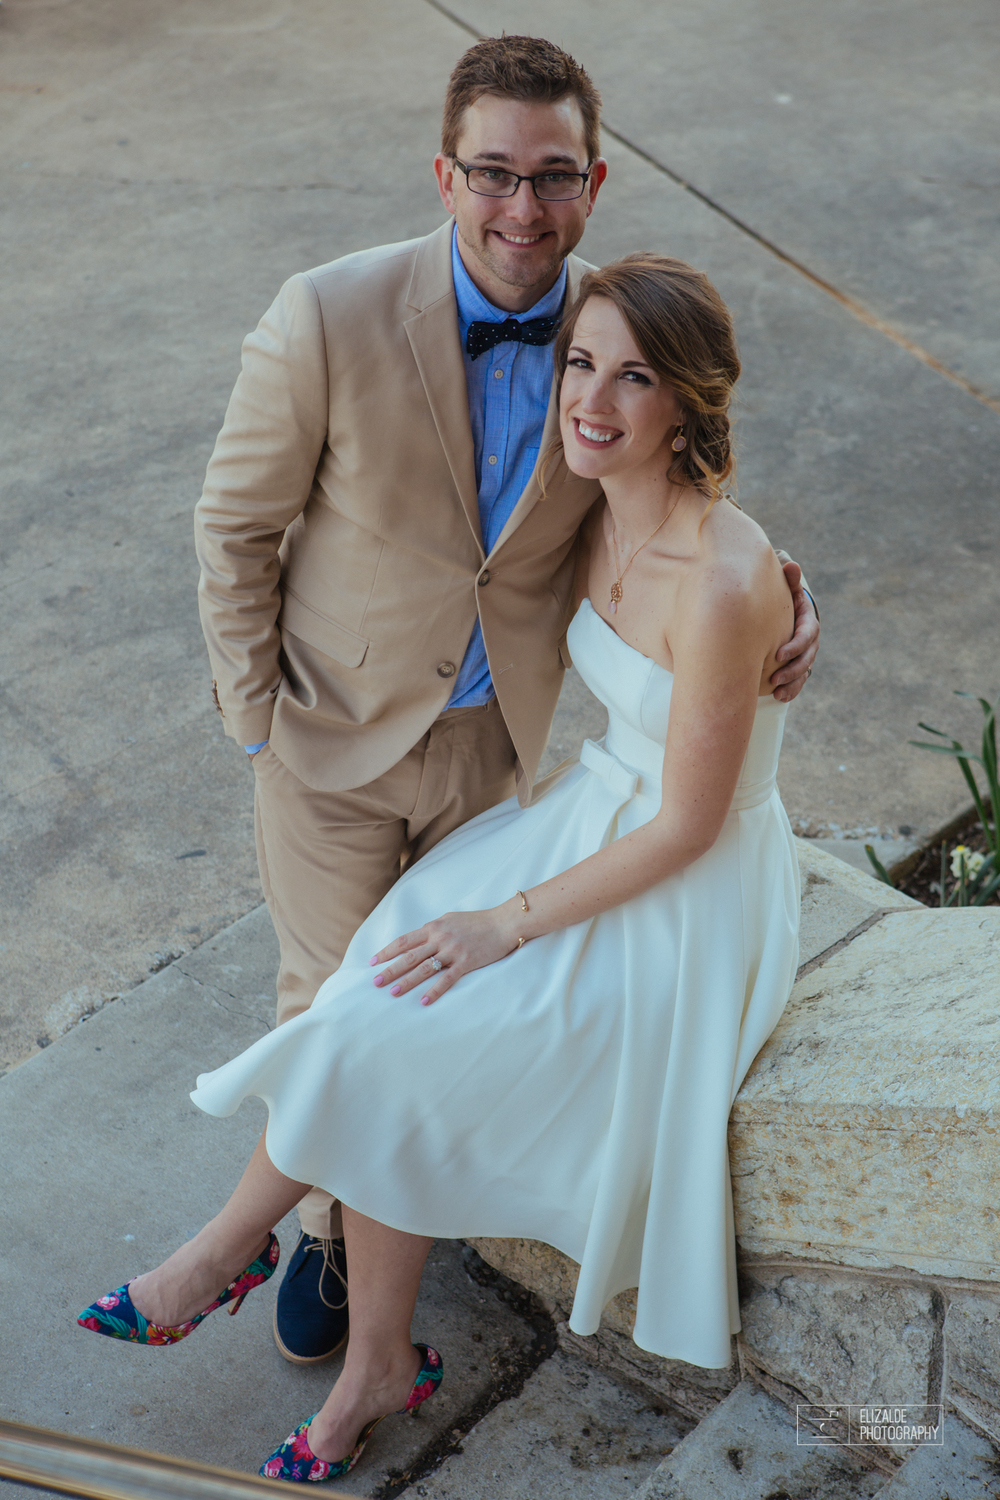 Denton wedding photographer_DFW photographer_elizalde photography_juliana and jeff53.jpg